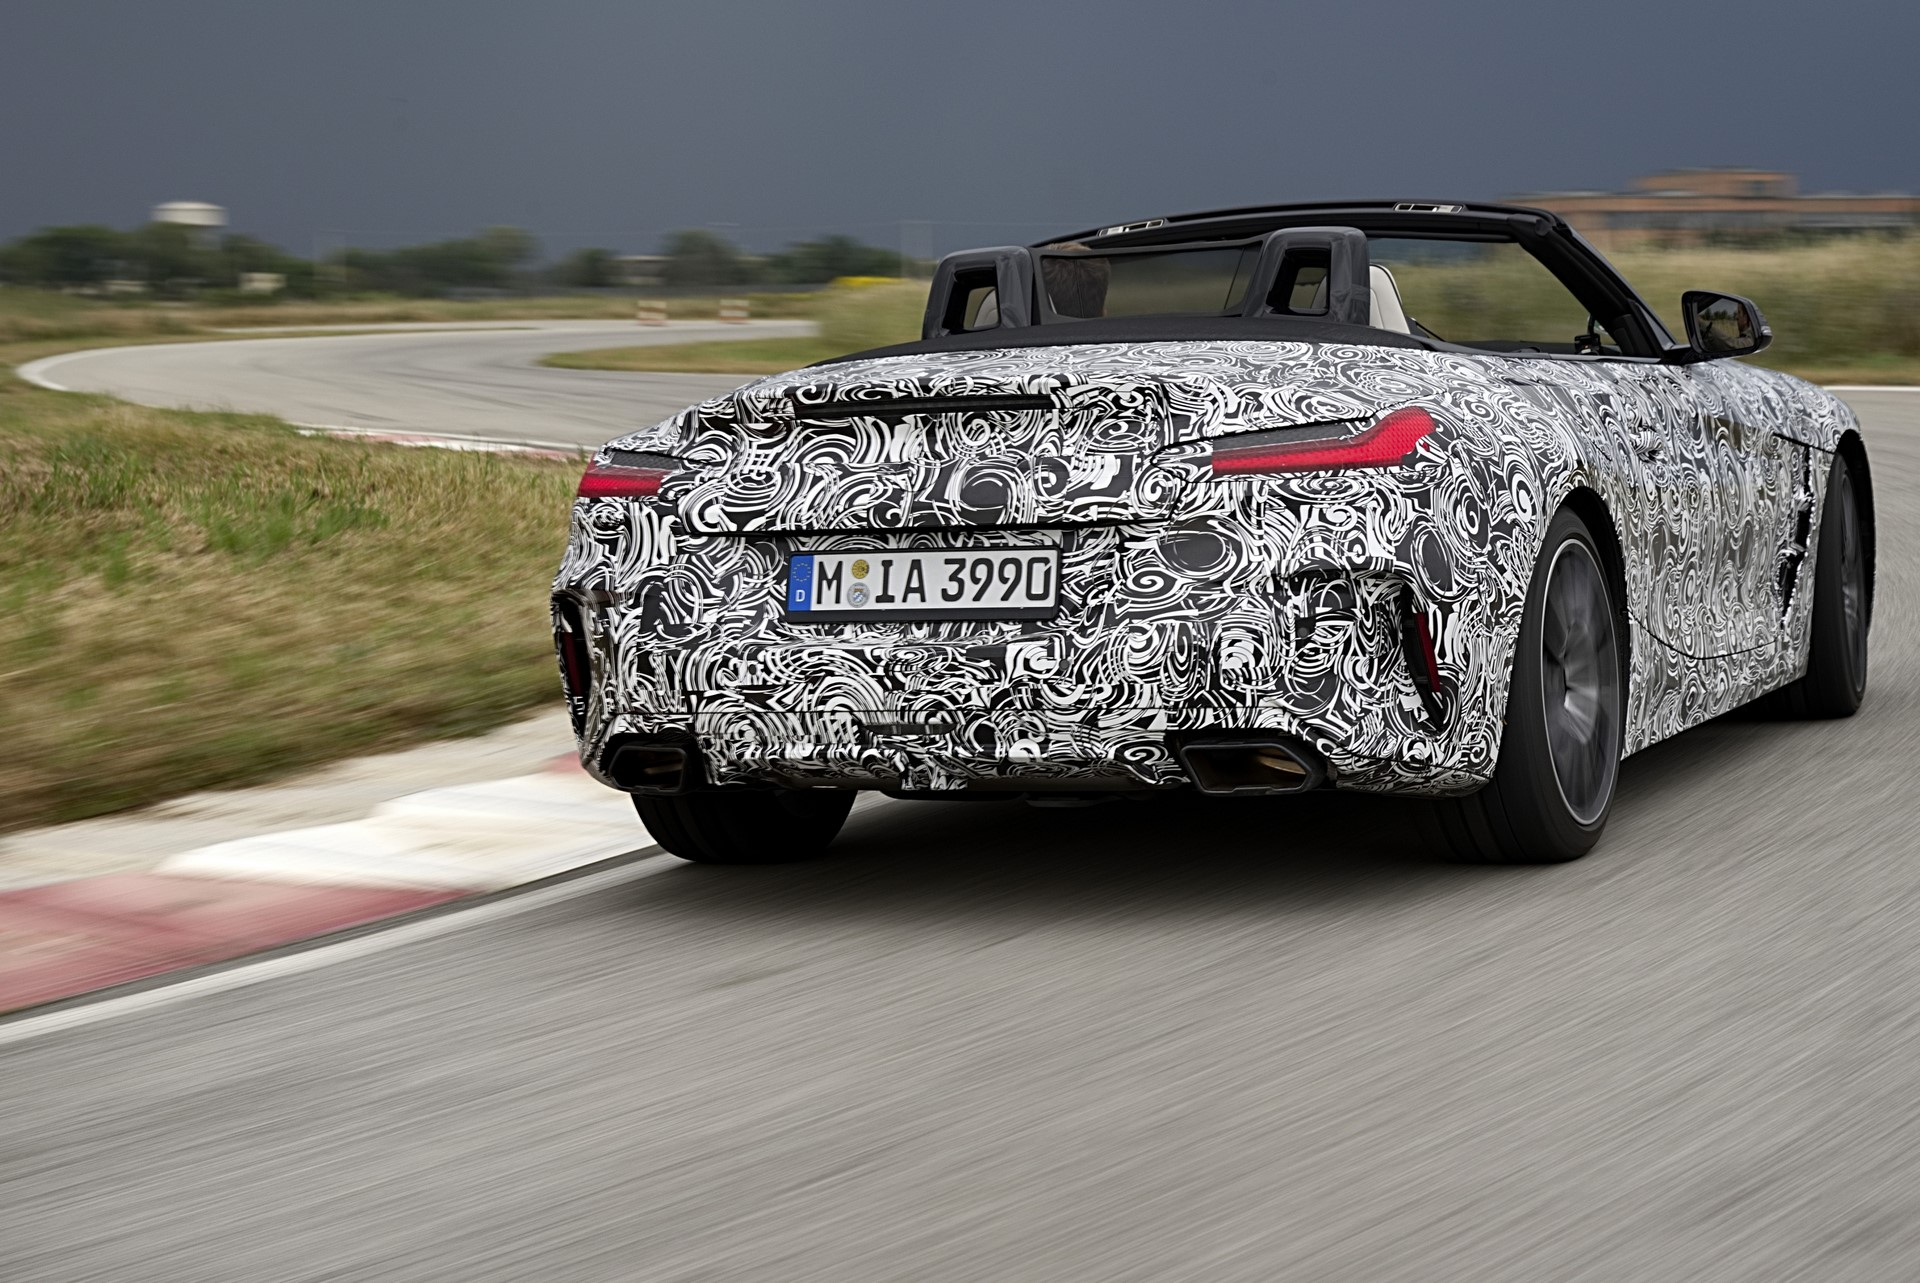 BMW Z4 M40i 2019 official spy photos (13)